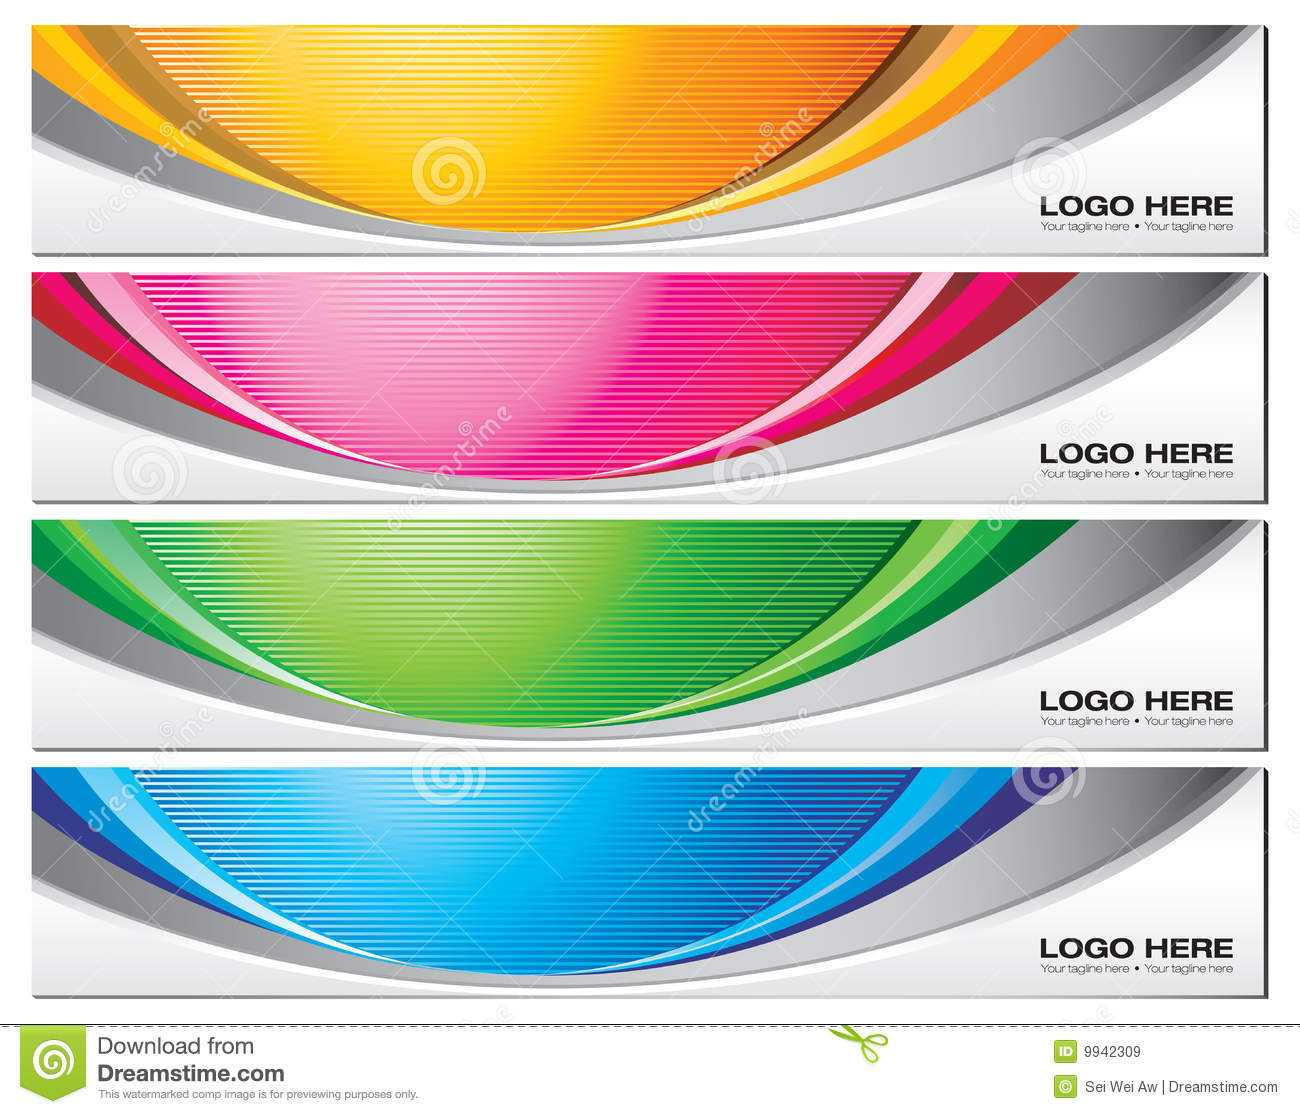 Banner Templates Stock Vector. Illustration Of Vector - 9942309 Within Website Banner Templates Free Download